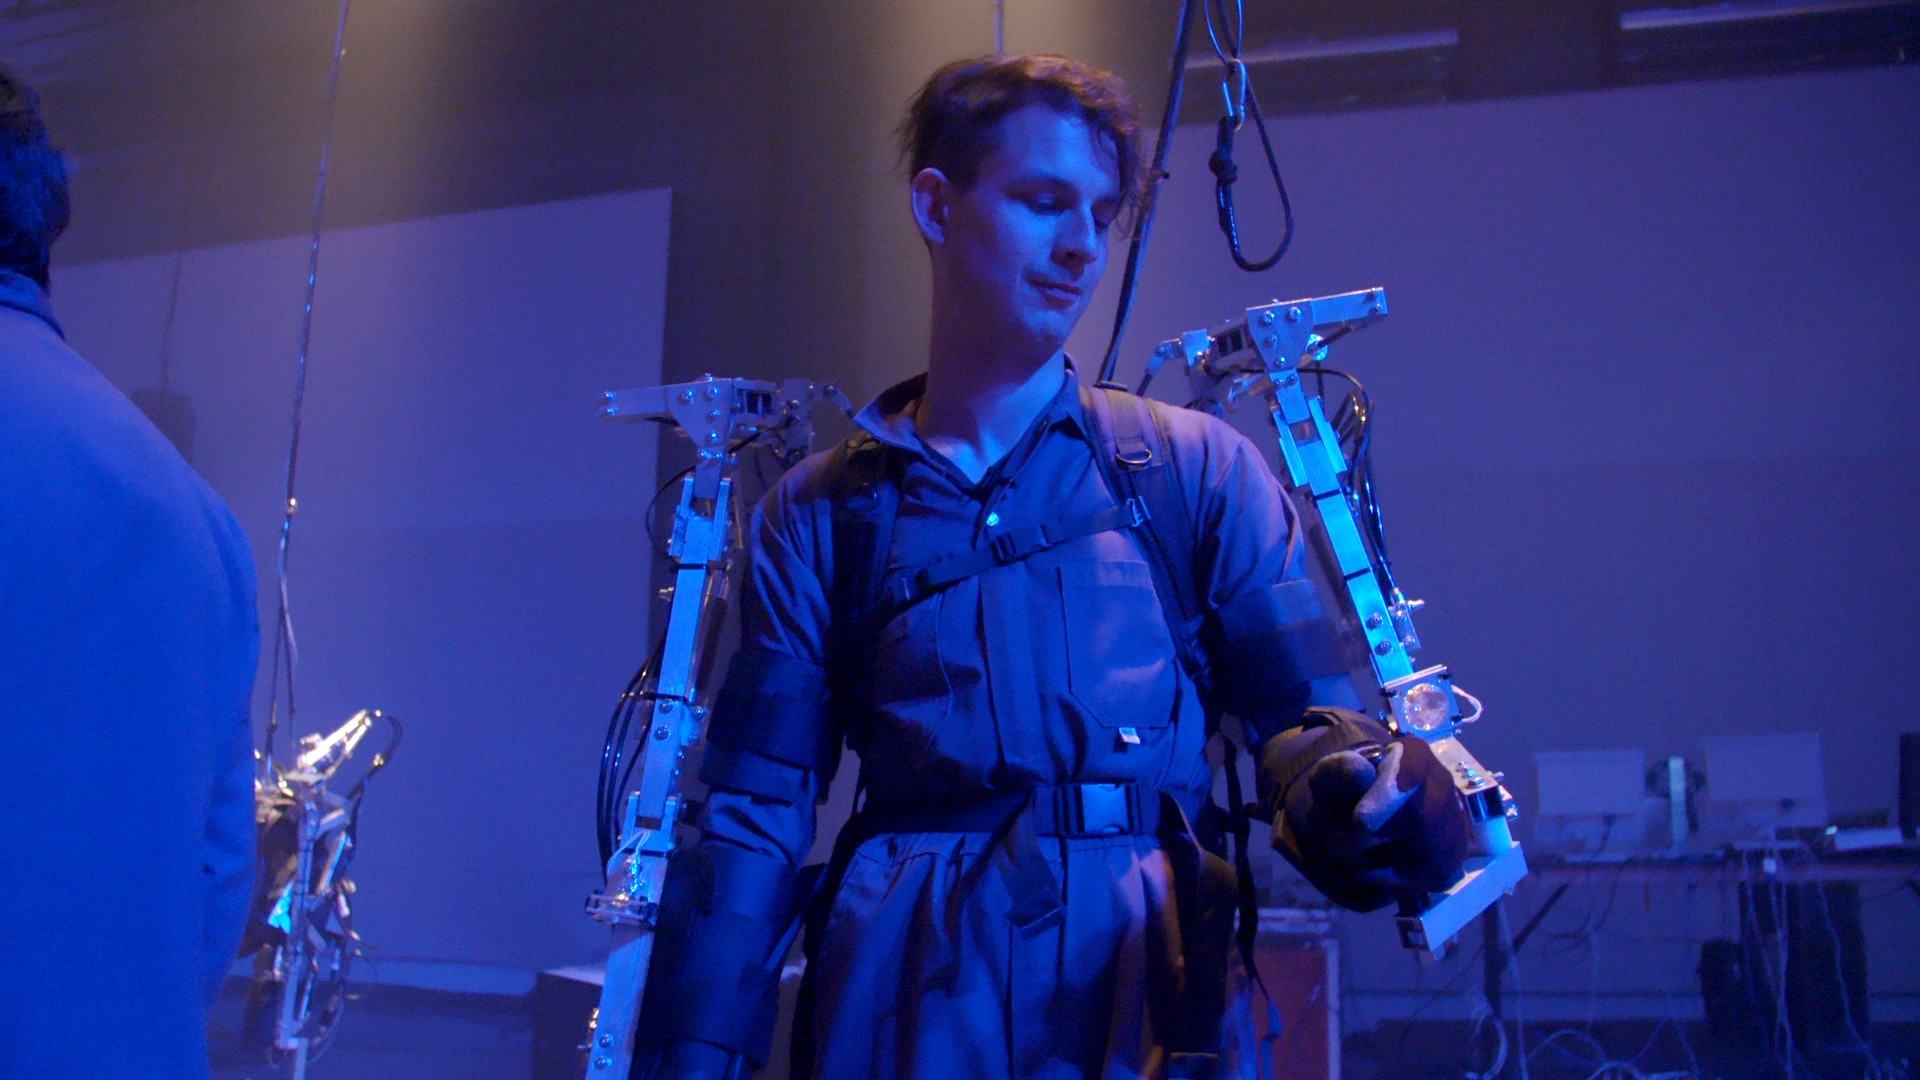 Controlled By Robots And Made To Dance: A New Kind Of Performance Art